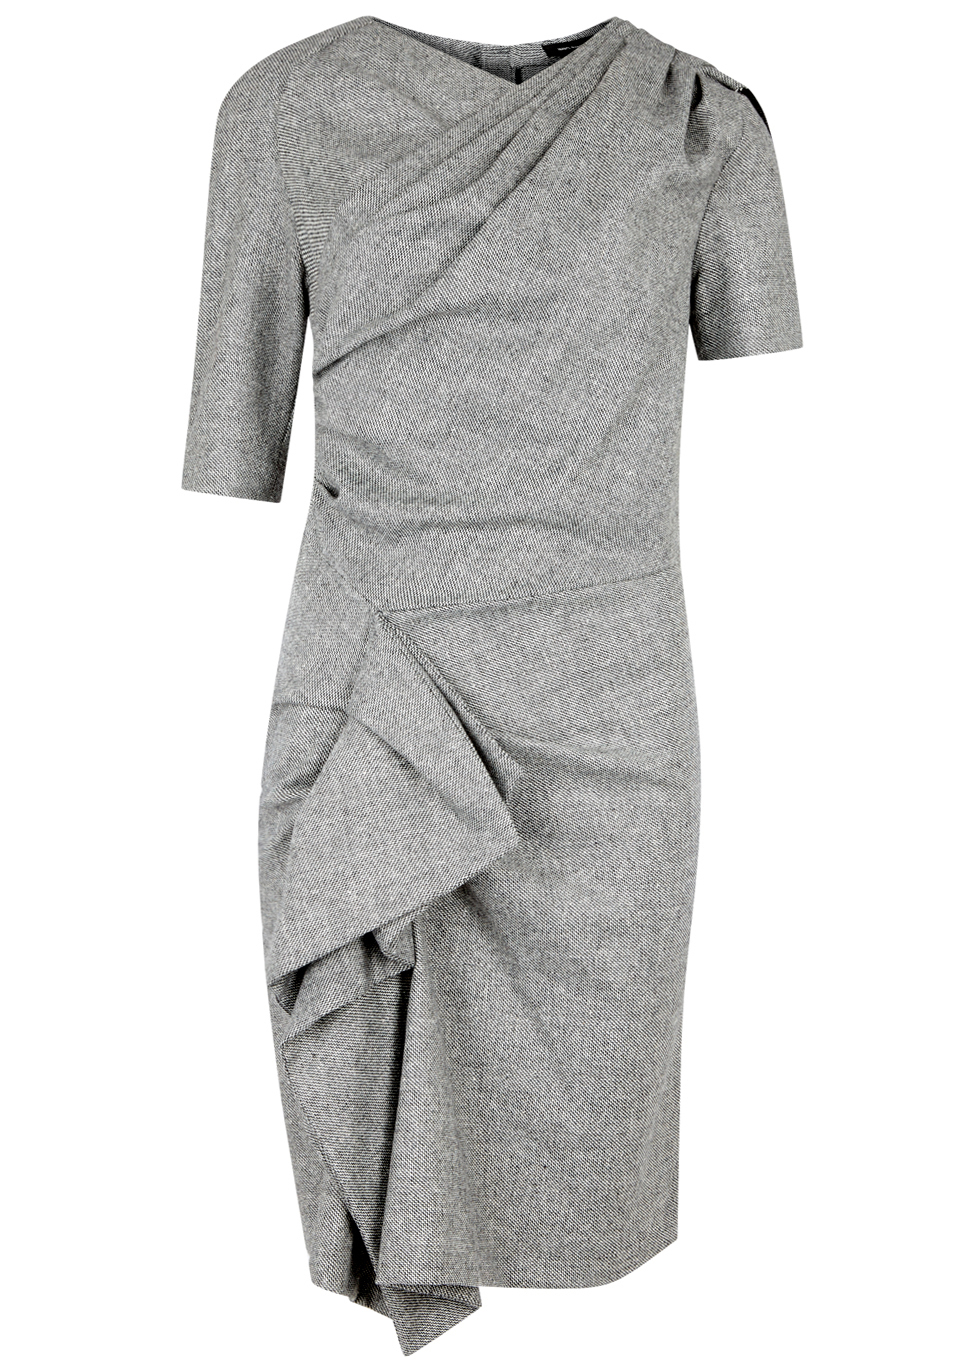 Kingsley Grey Draped Tweed Dress - style: shift; neckline: v-neck; fit: tailored/fitted; pattern: plain; predominant colour: mid grey; occasions: evening, work; length: just above the knee; fibres: polyester/polyamide - stretch; hip detail: adds bulk at the hips; sleeve length: short sleeve; sleeve style: standard; pattern type: fabric; texture group: tweed - light/midweight; season: a/w 2016; wardrobe: highlight